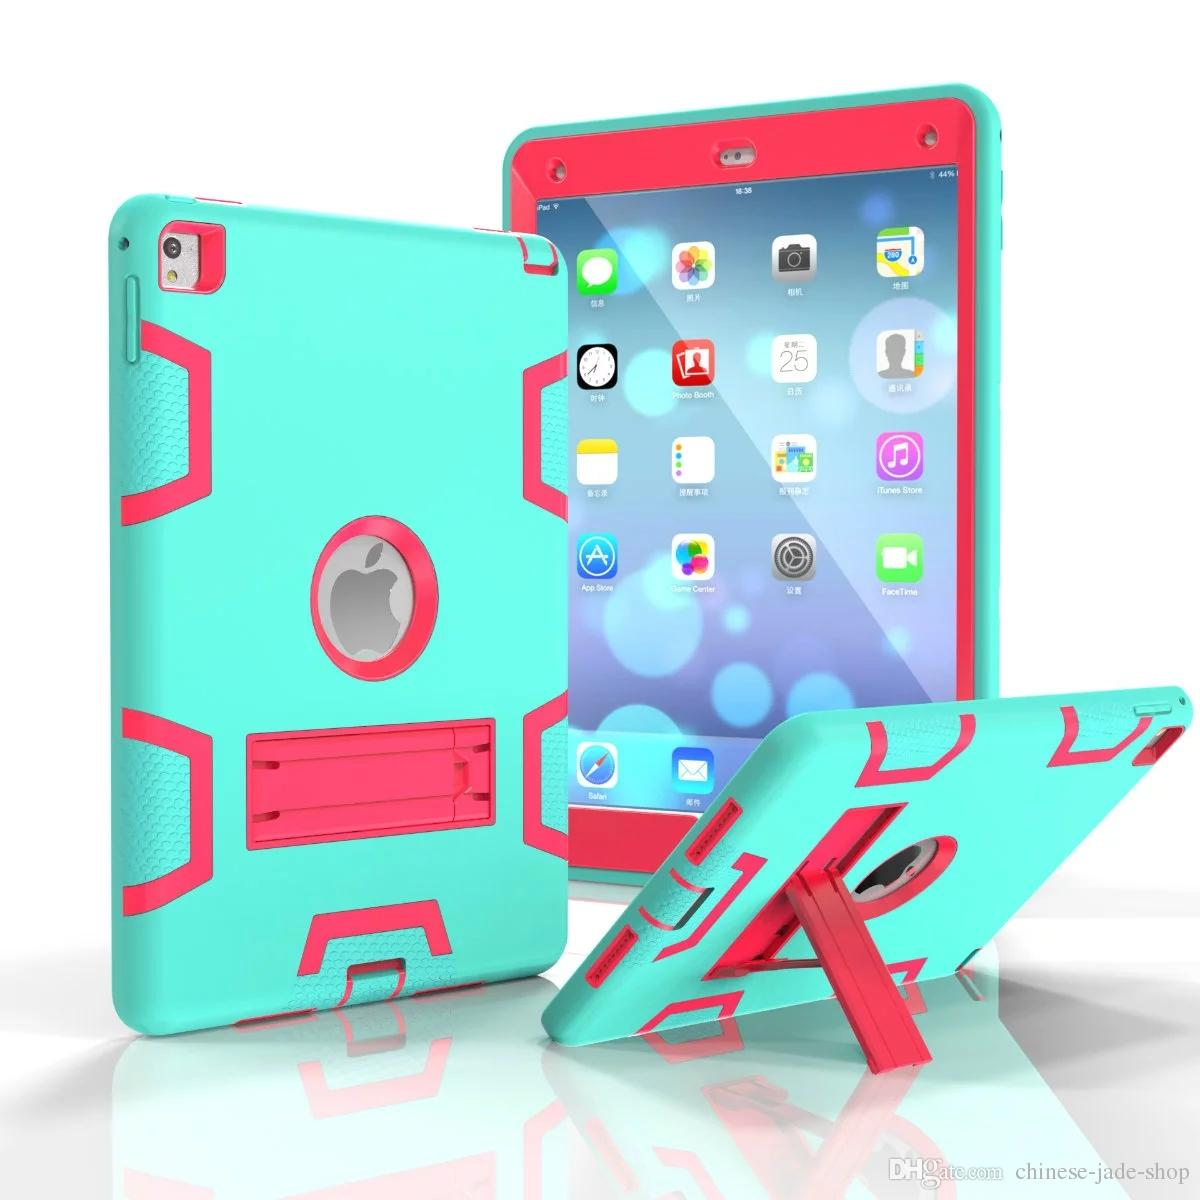 A Type Heavy Duty Shockproof Kickstand Hybrid Robot Case Cover for iPad pro 9.7 Pro 10.5 ipad 2 3 4 air 1 air 2